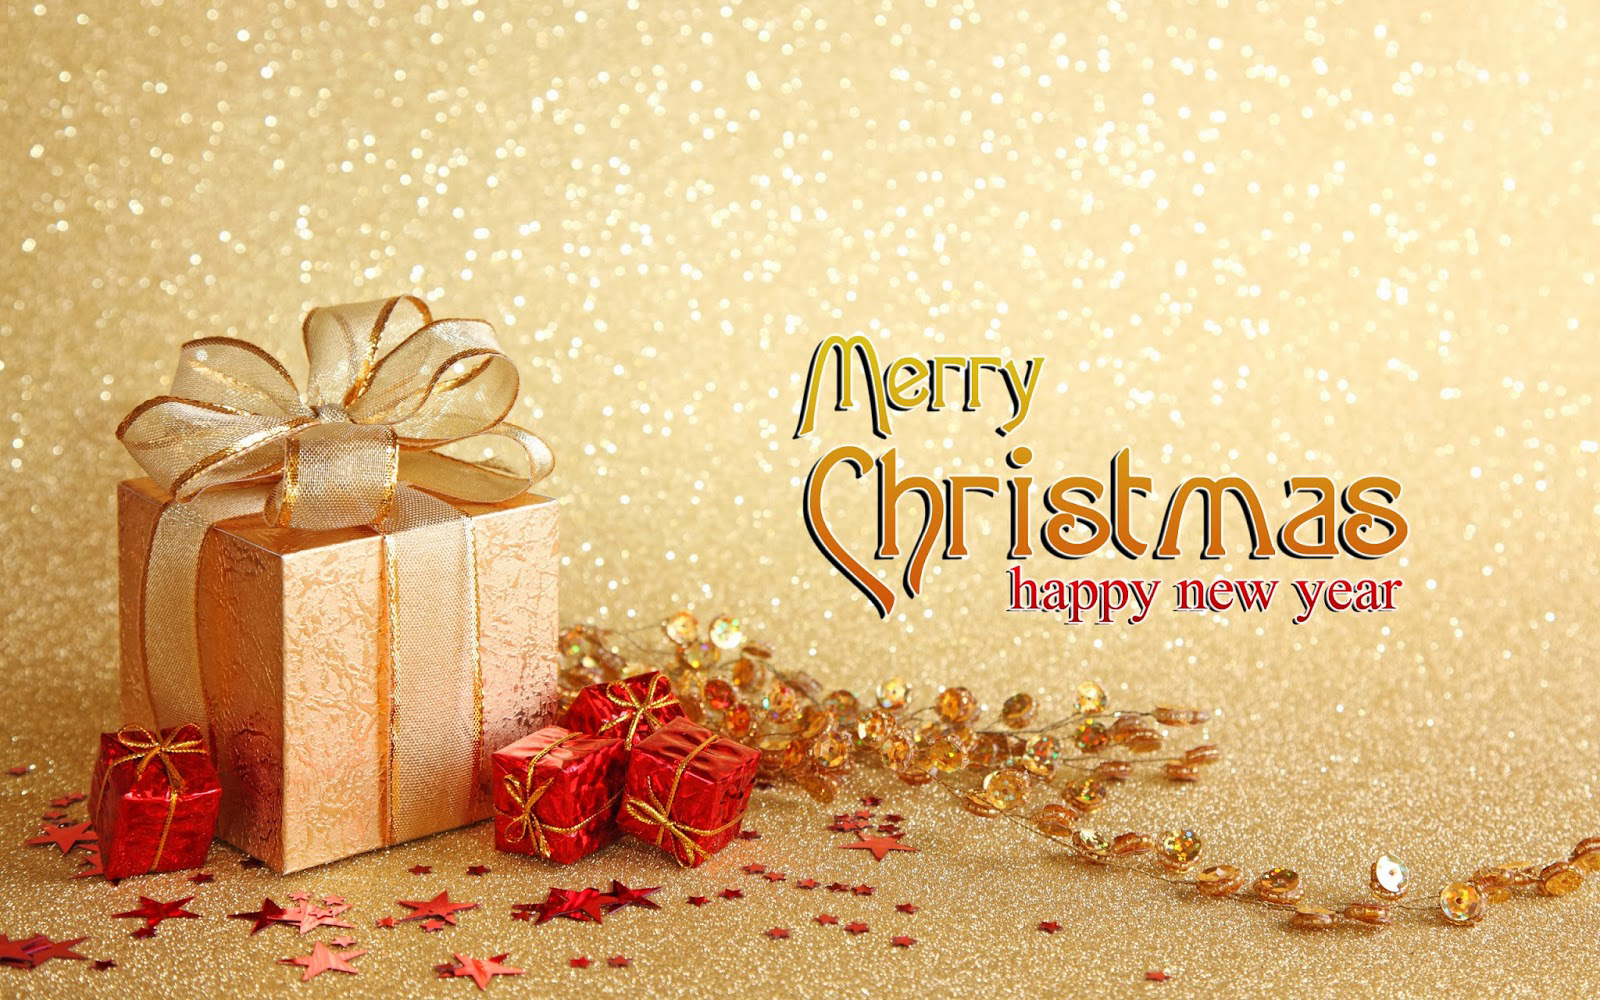 100 merry christmas wishes